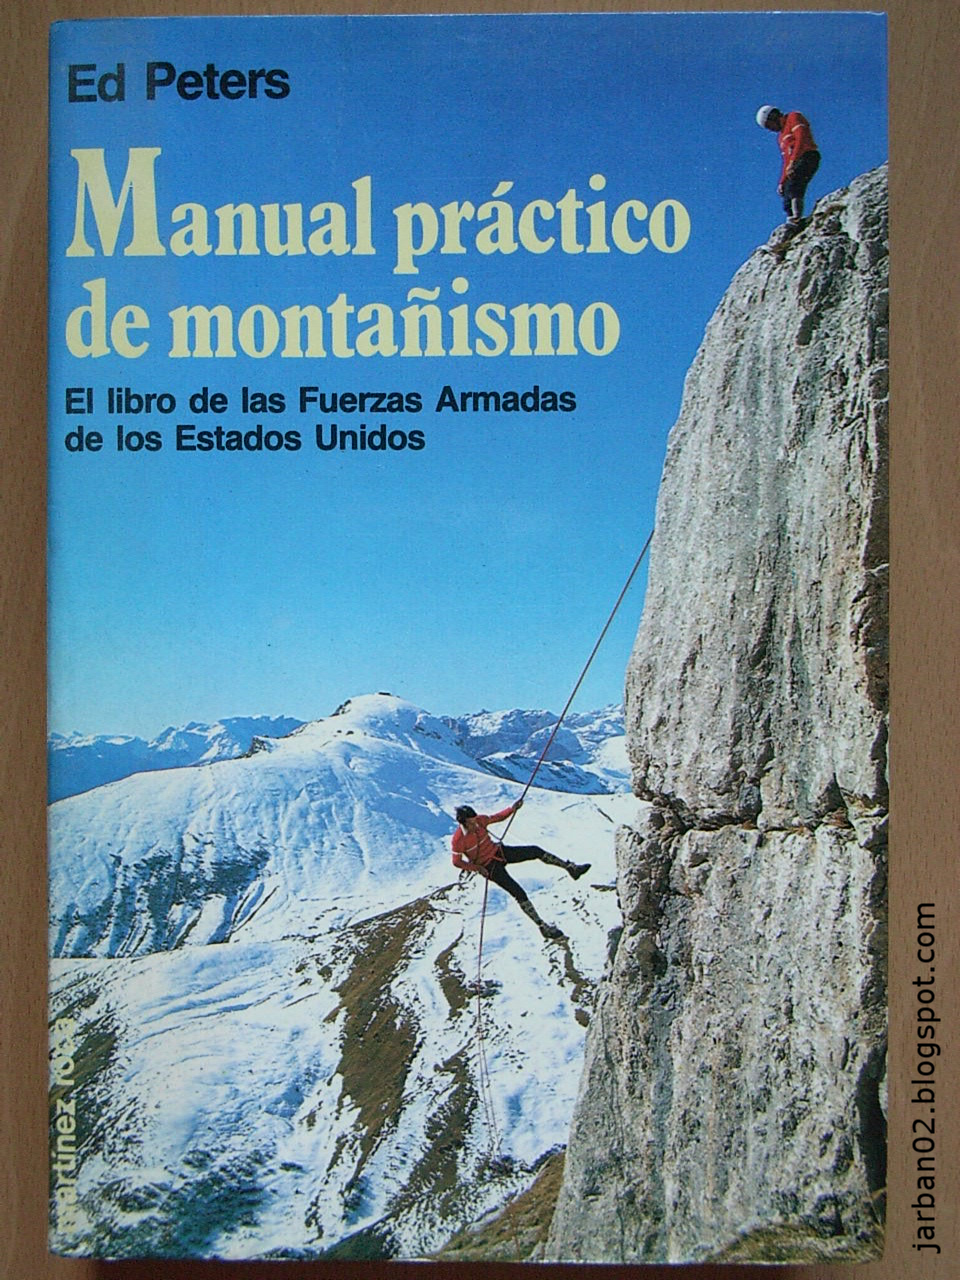 jarban02_pic054: Manual práctico de montañismo de The Mountaineers of Seattle (Edición de Ed Peters)